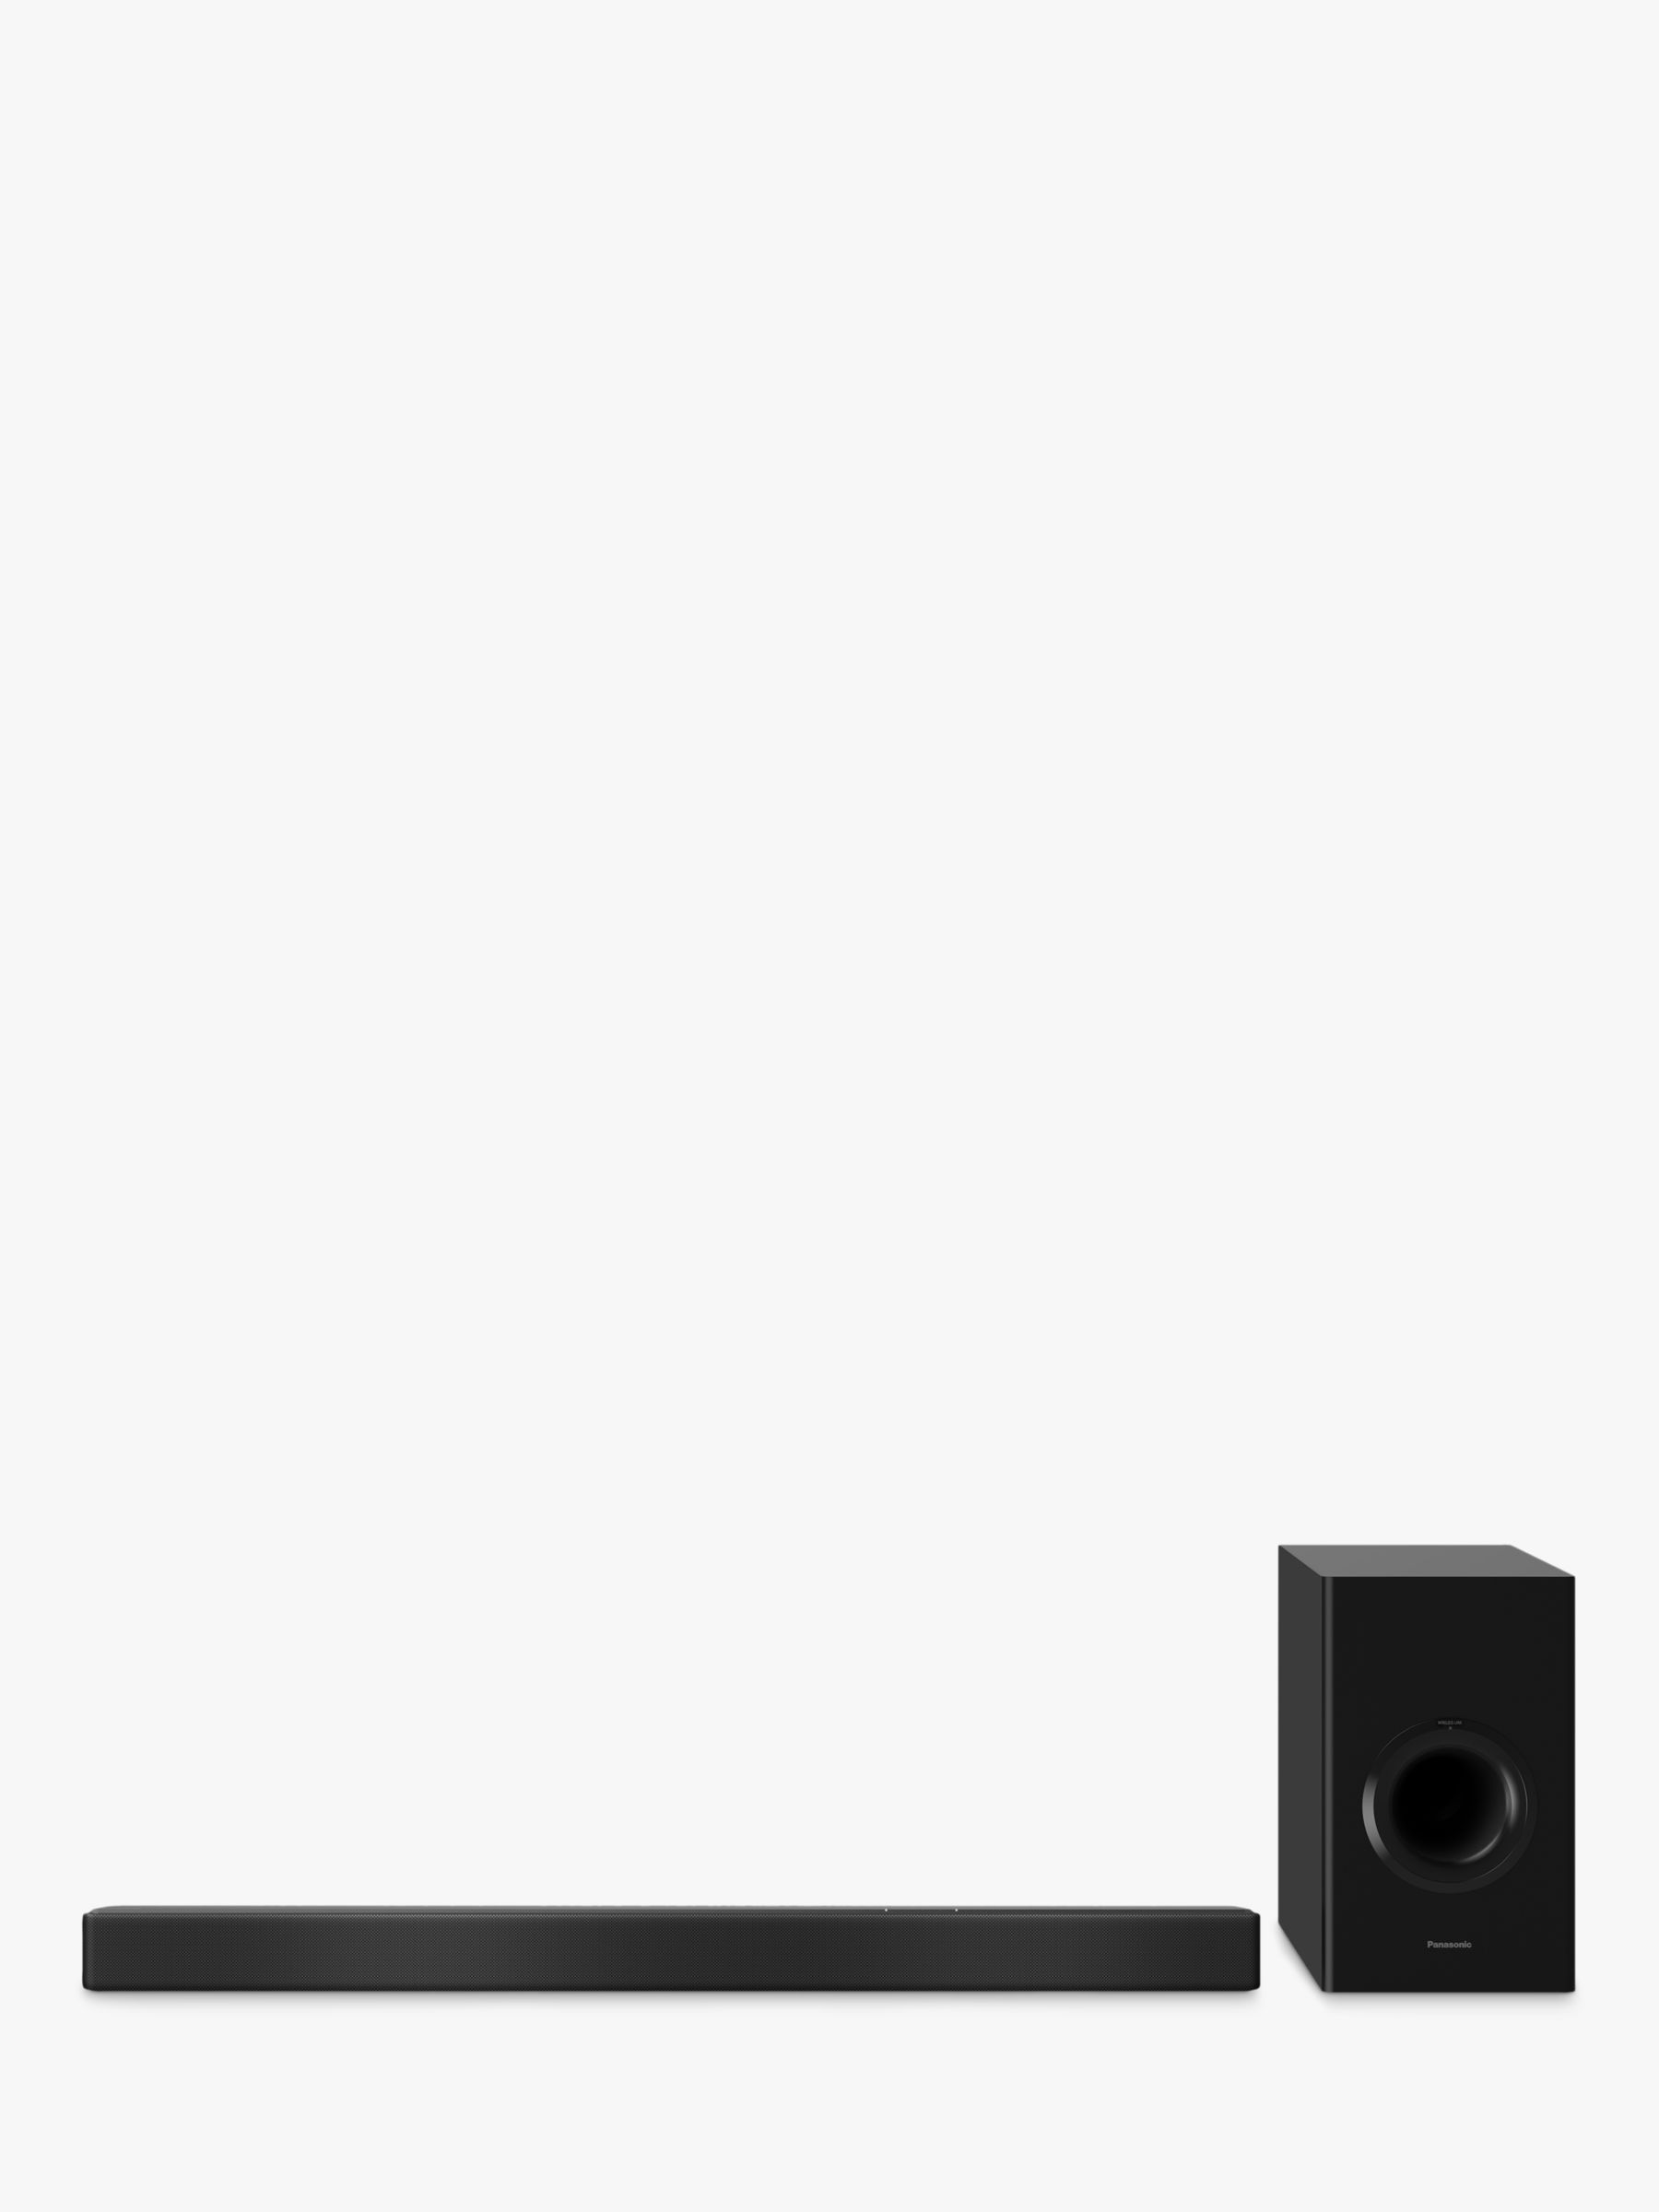 Panasonic Panasonic SC-HTB510 Bluetooth Wi-Fi Sound Bar with Wireless Subwoofer & Chromecast Built-in